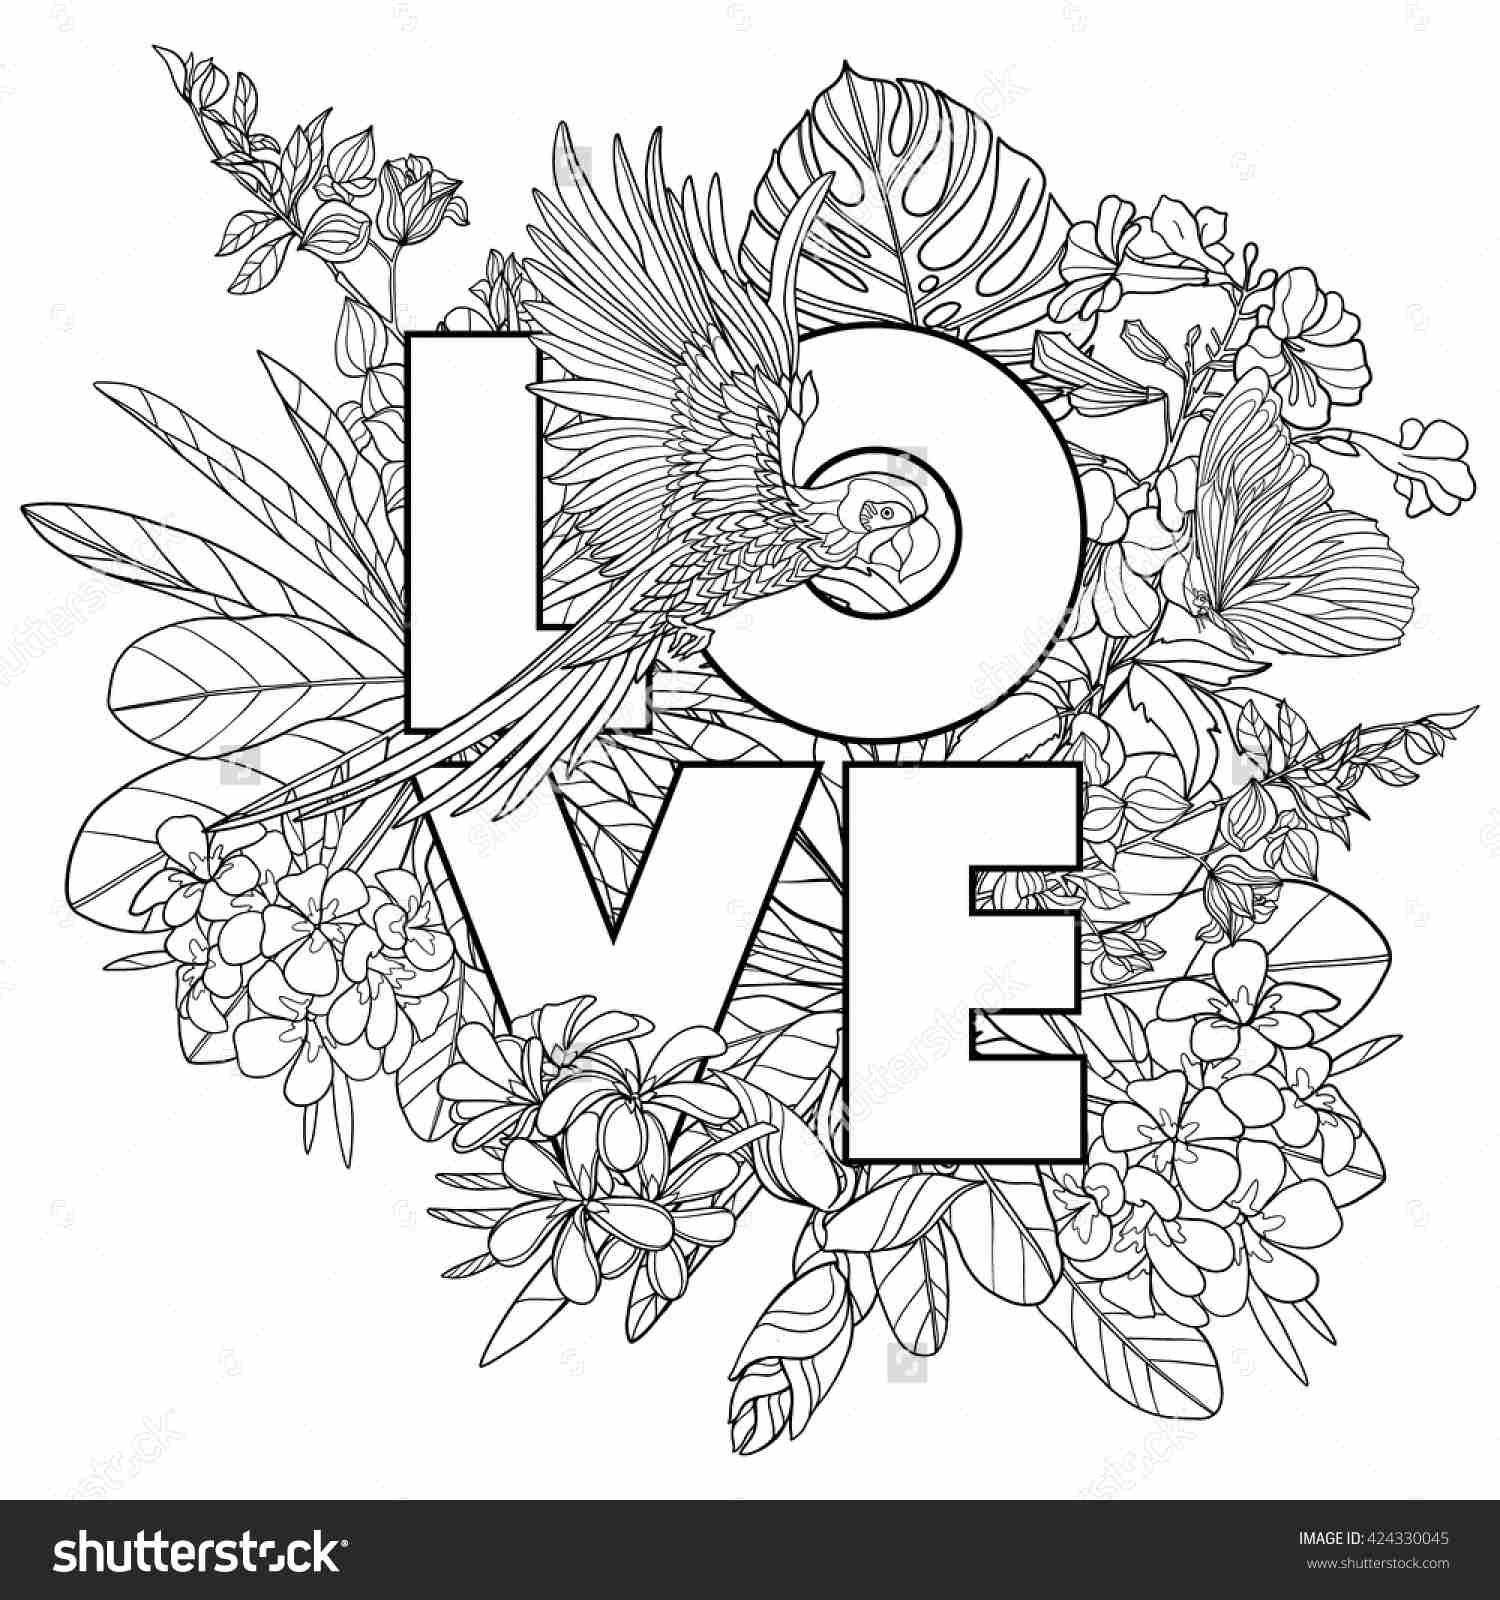 Live Love Laugh Coloring Pages At Getcolorings